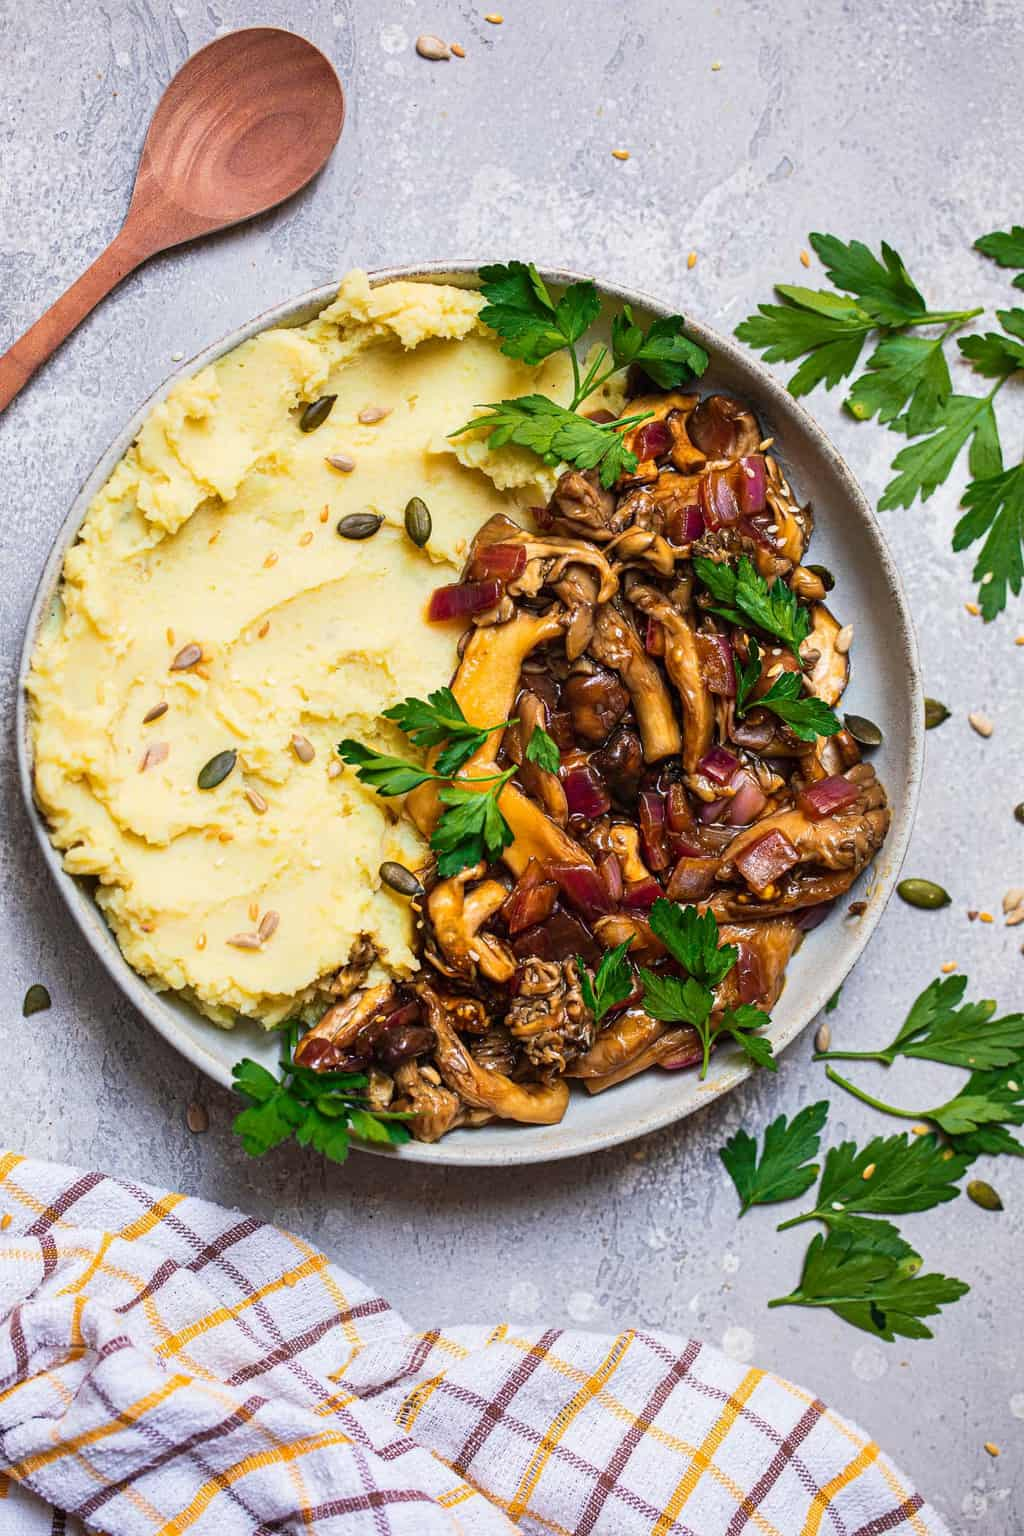 Bowl with mashed potatoes and mushrooms